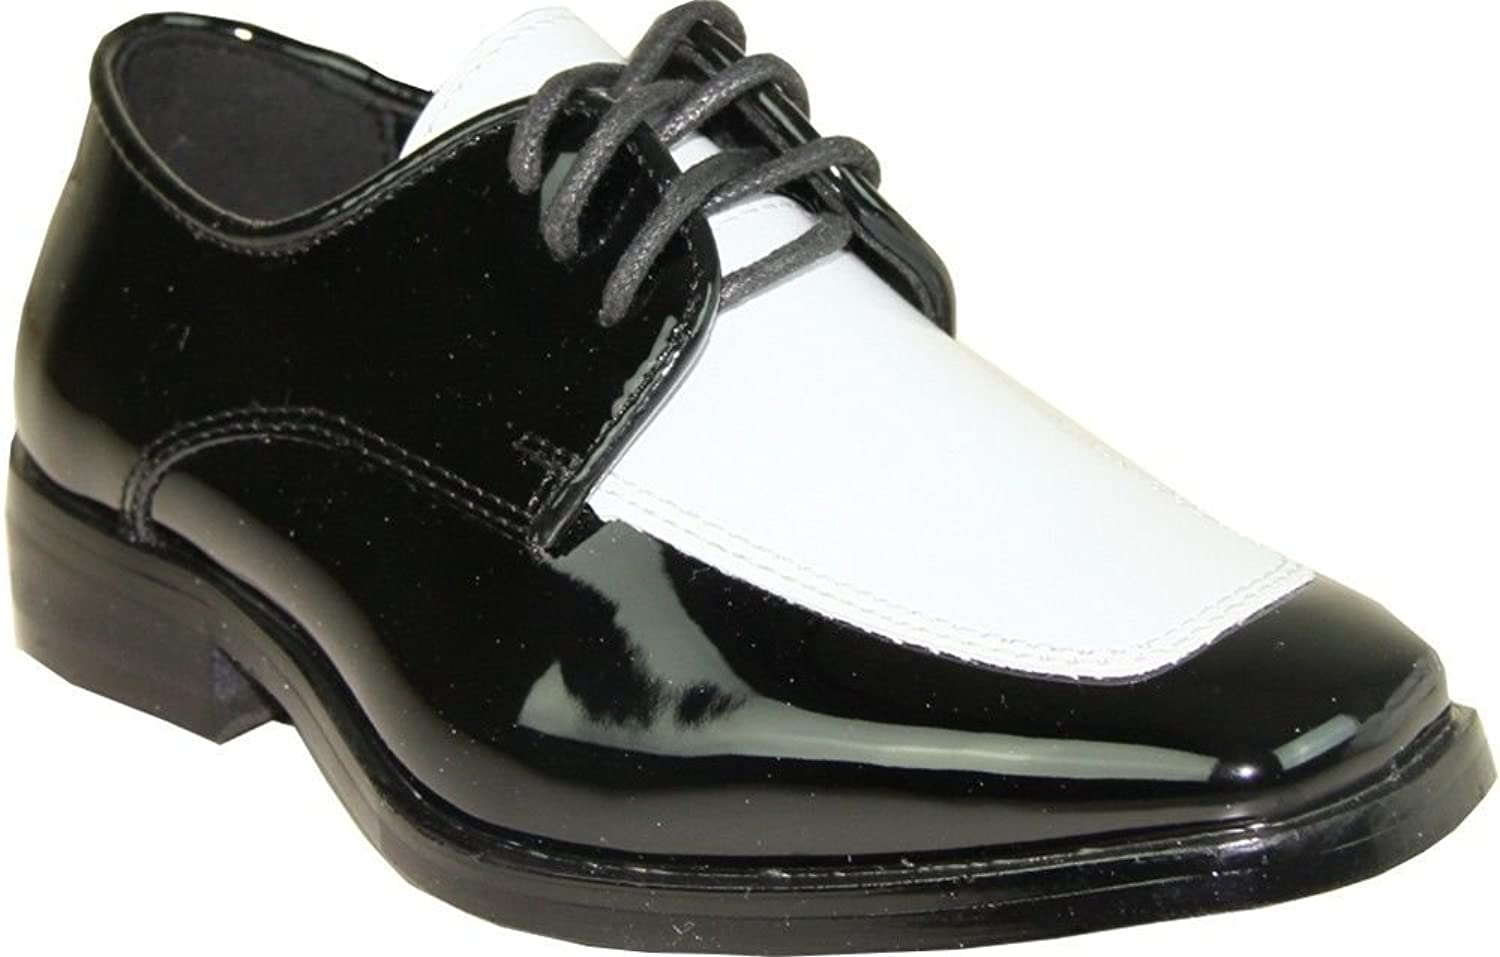 Bravo Vangelo Men's Tuxedo shoes Tux-3 Wrinkle Free Dress shoes Formal Oxford Black & White Patent